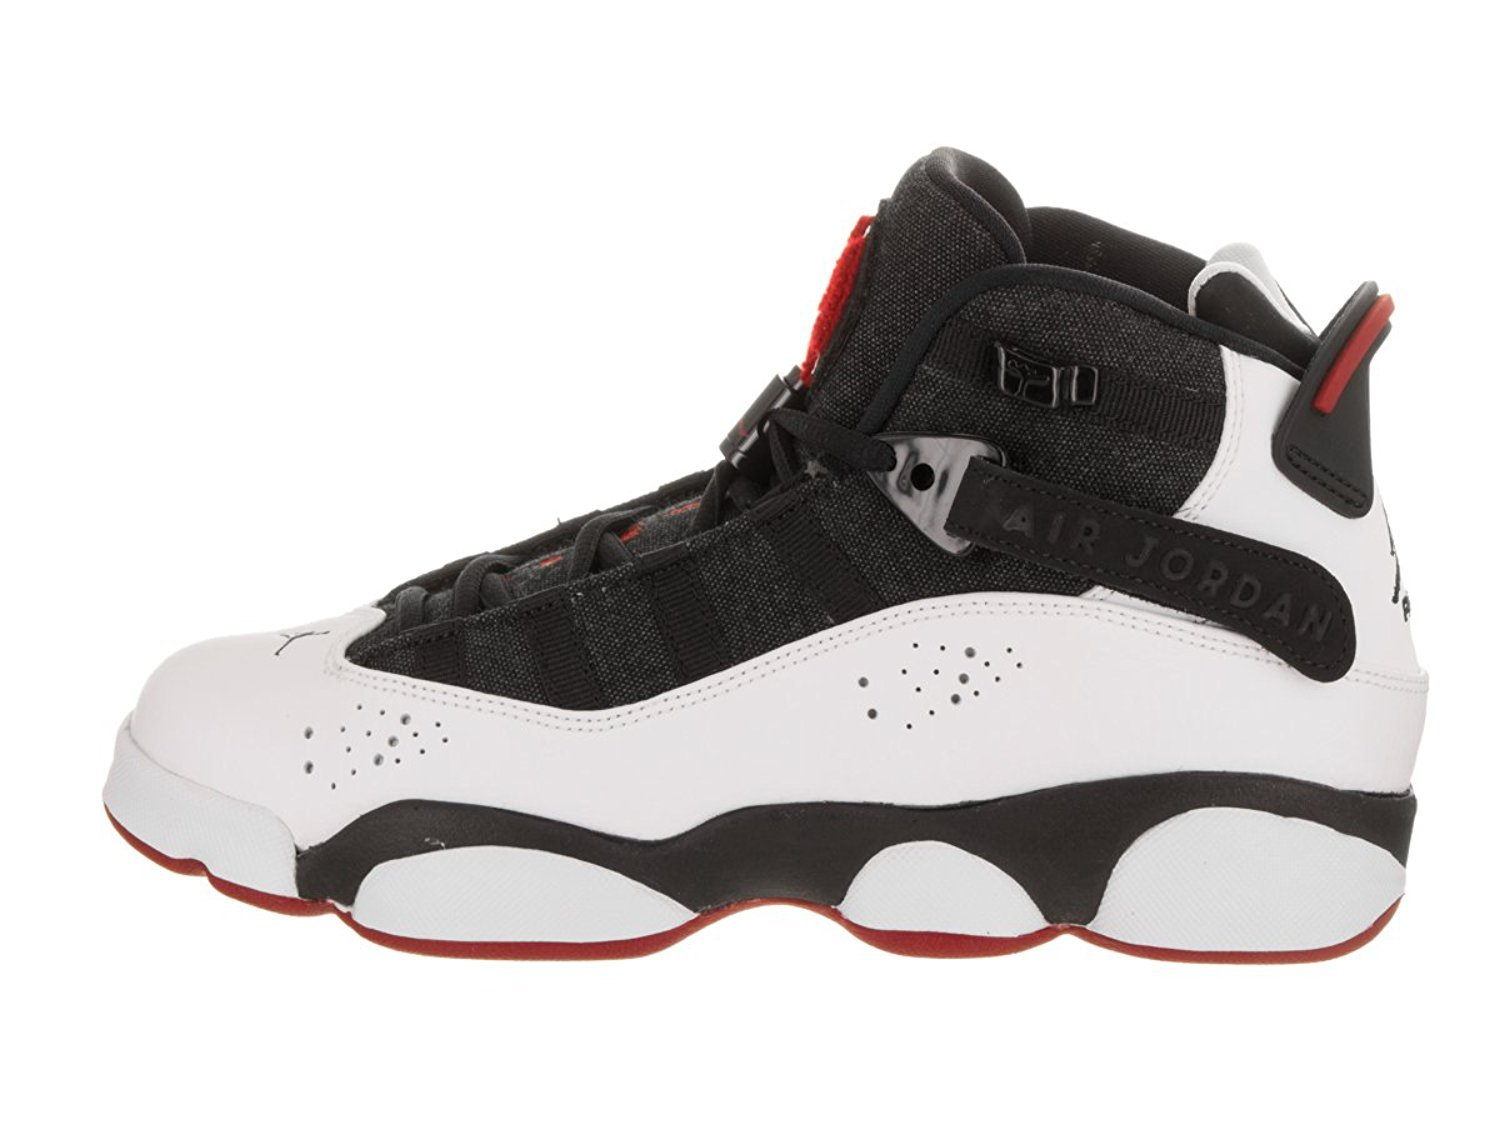 7c4cf19f954d Jordan 6 Rings Boys  Grade School Basketball Shoes 323419 014